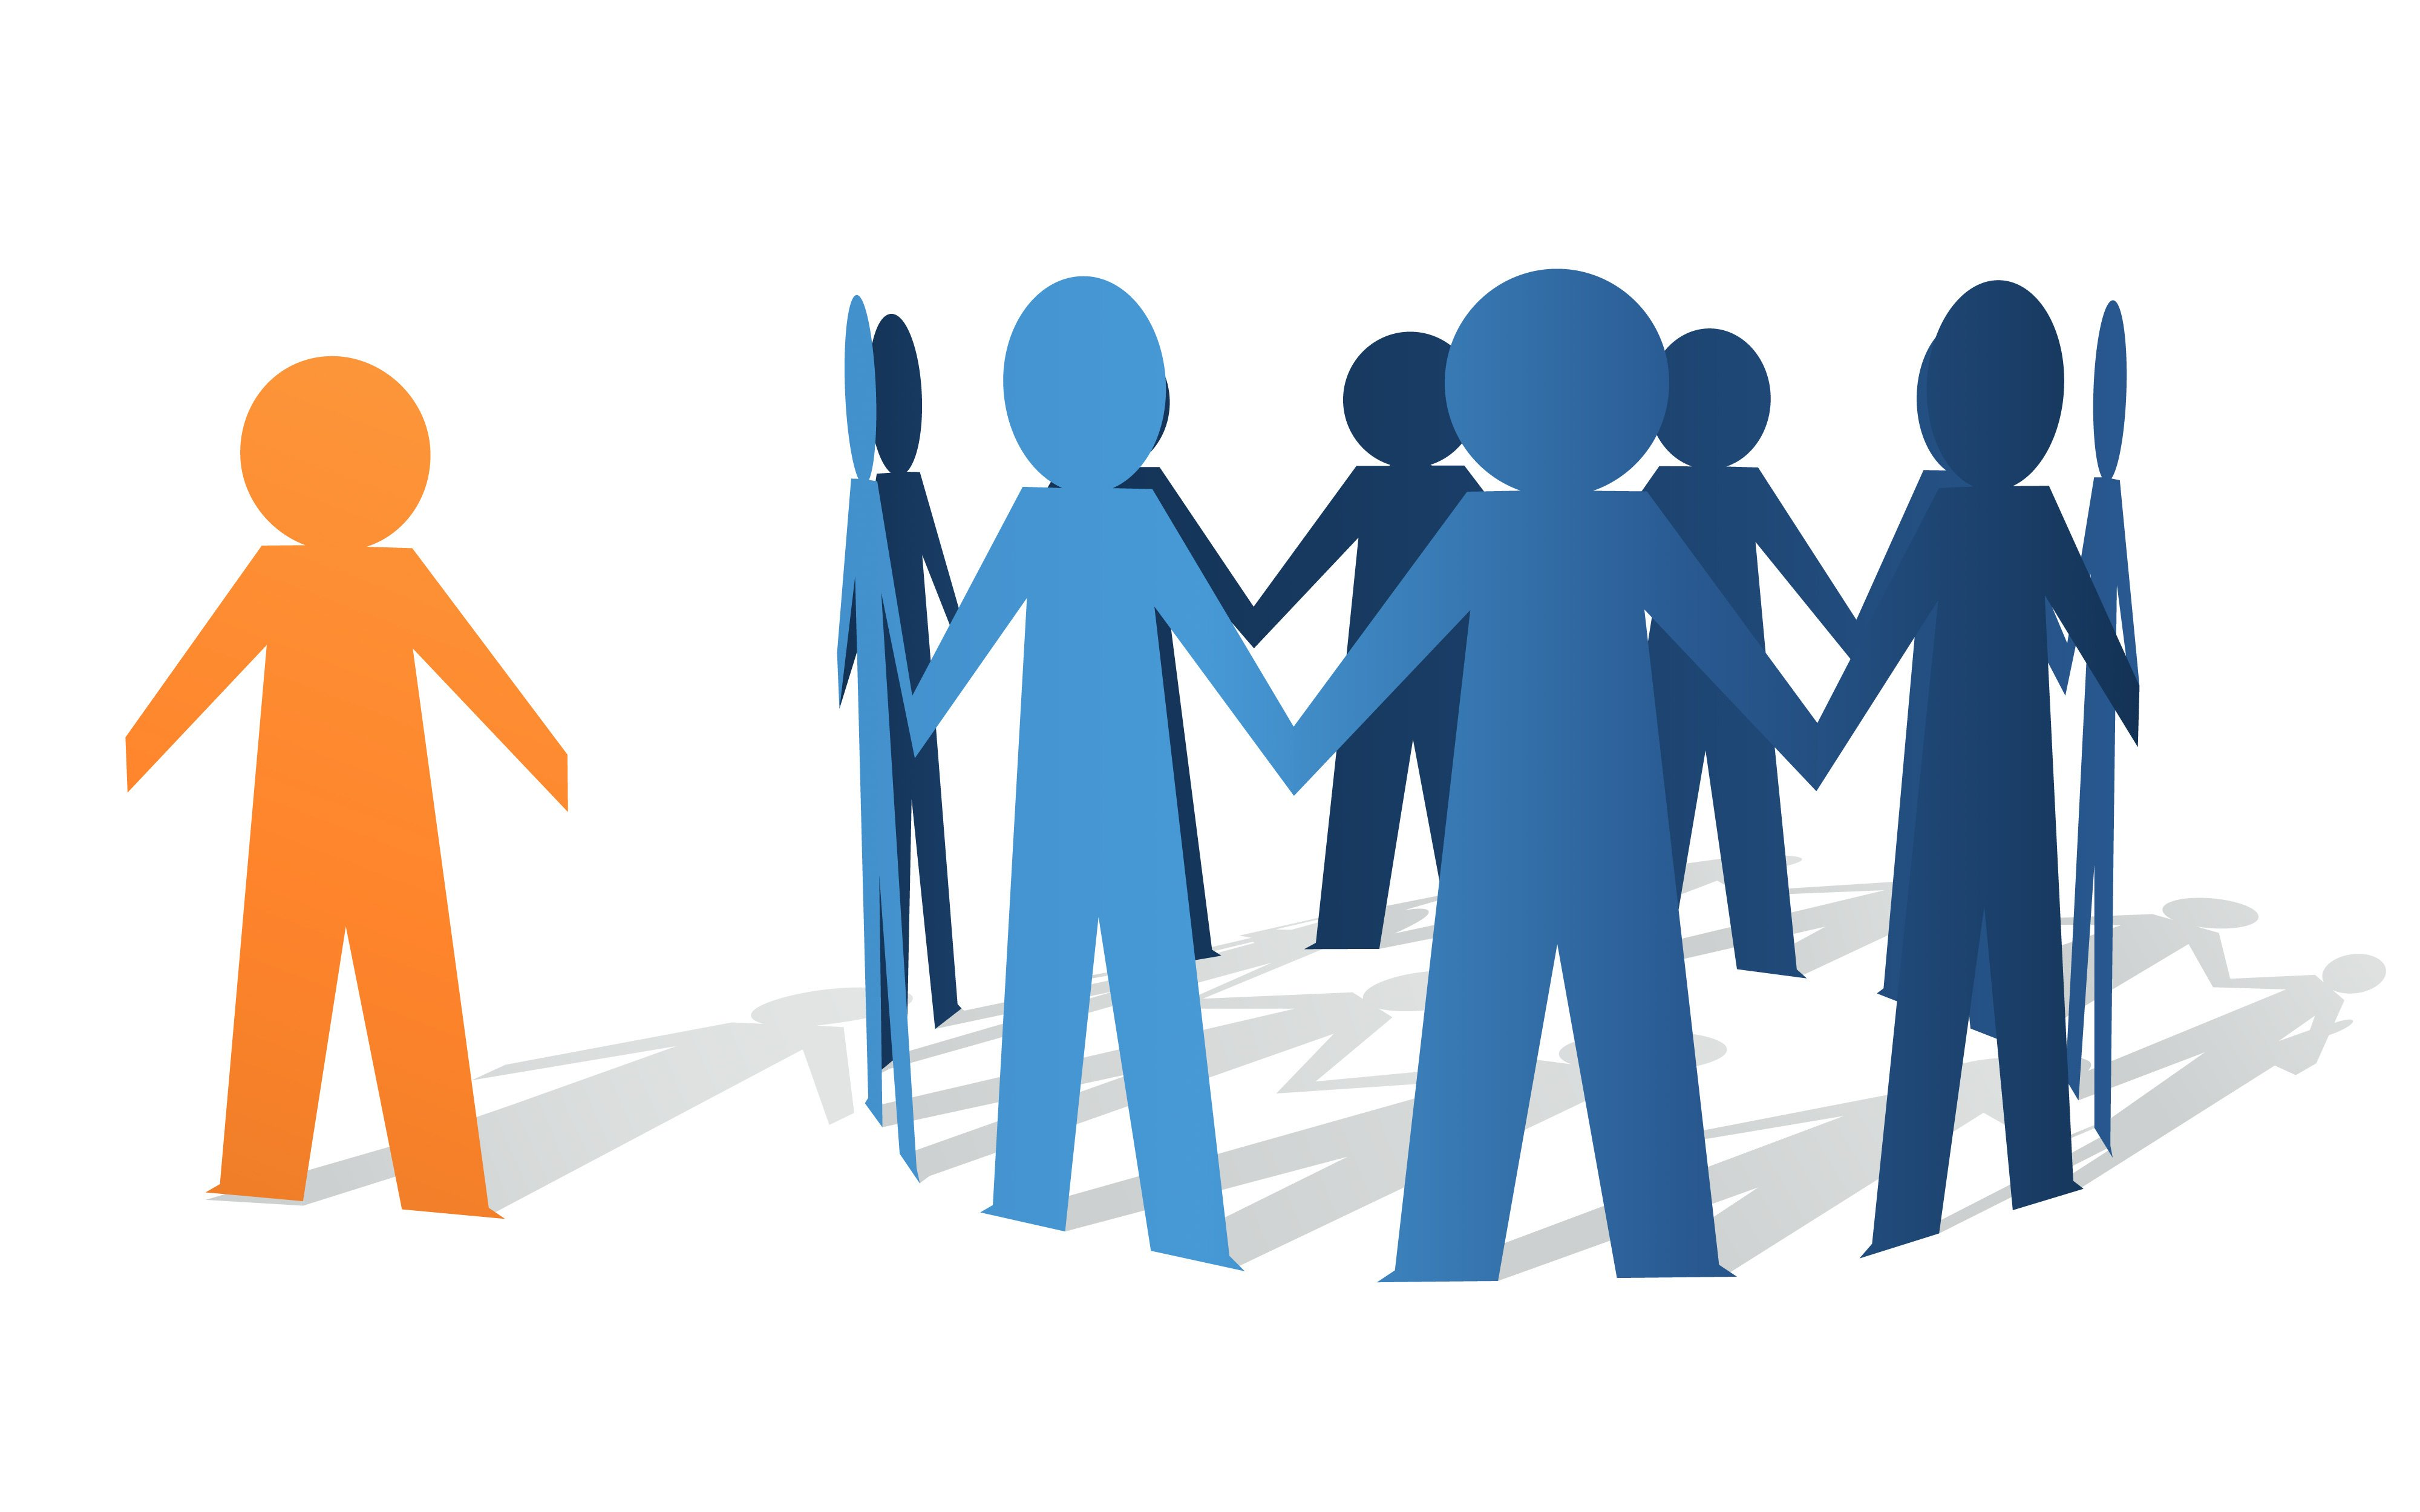 One orange paper person stands alone outside the group of blue paper people circle.